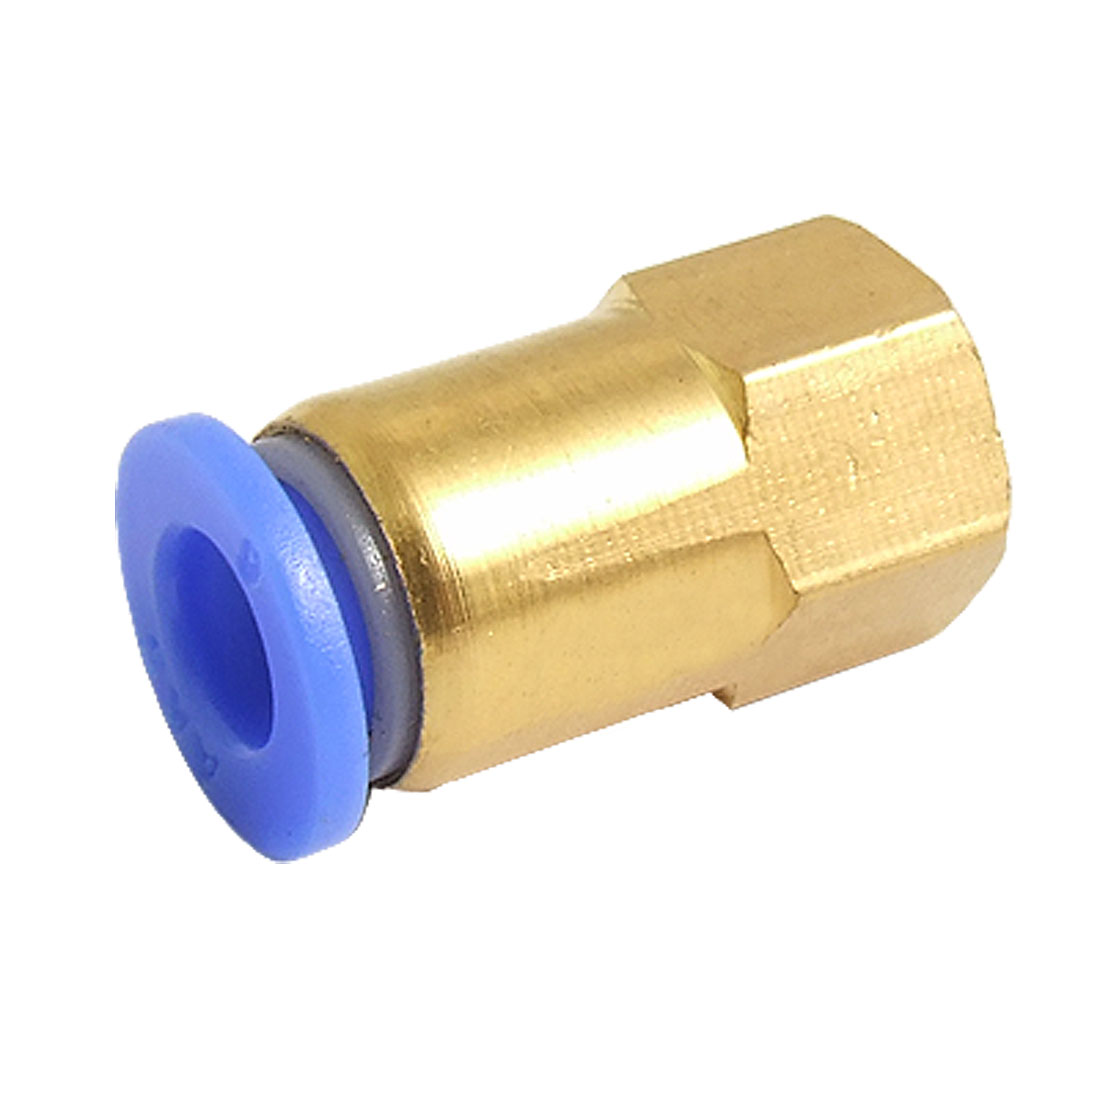 "Pneumatic 1/4"" Push in 3/8"" Female Screw Connector Fitting"